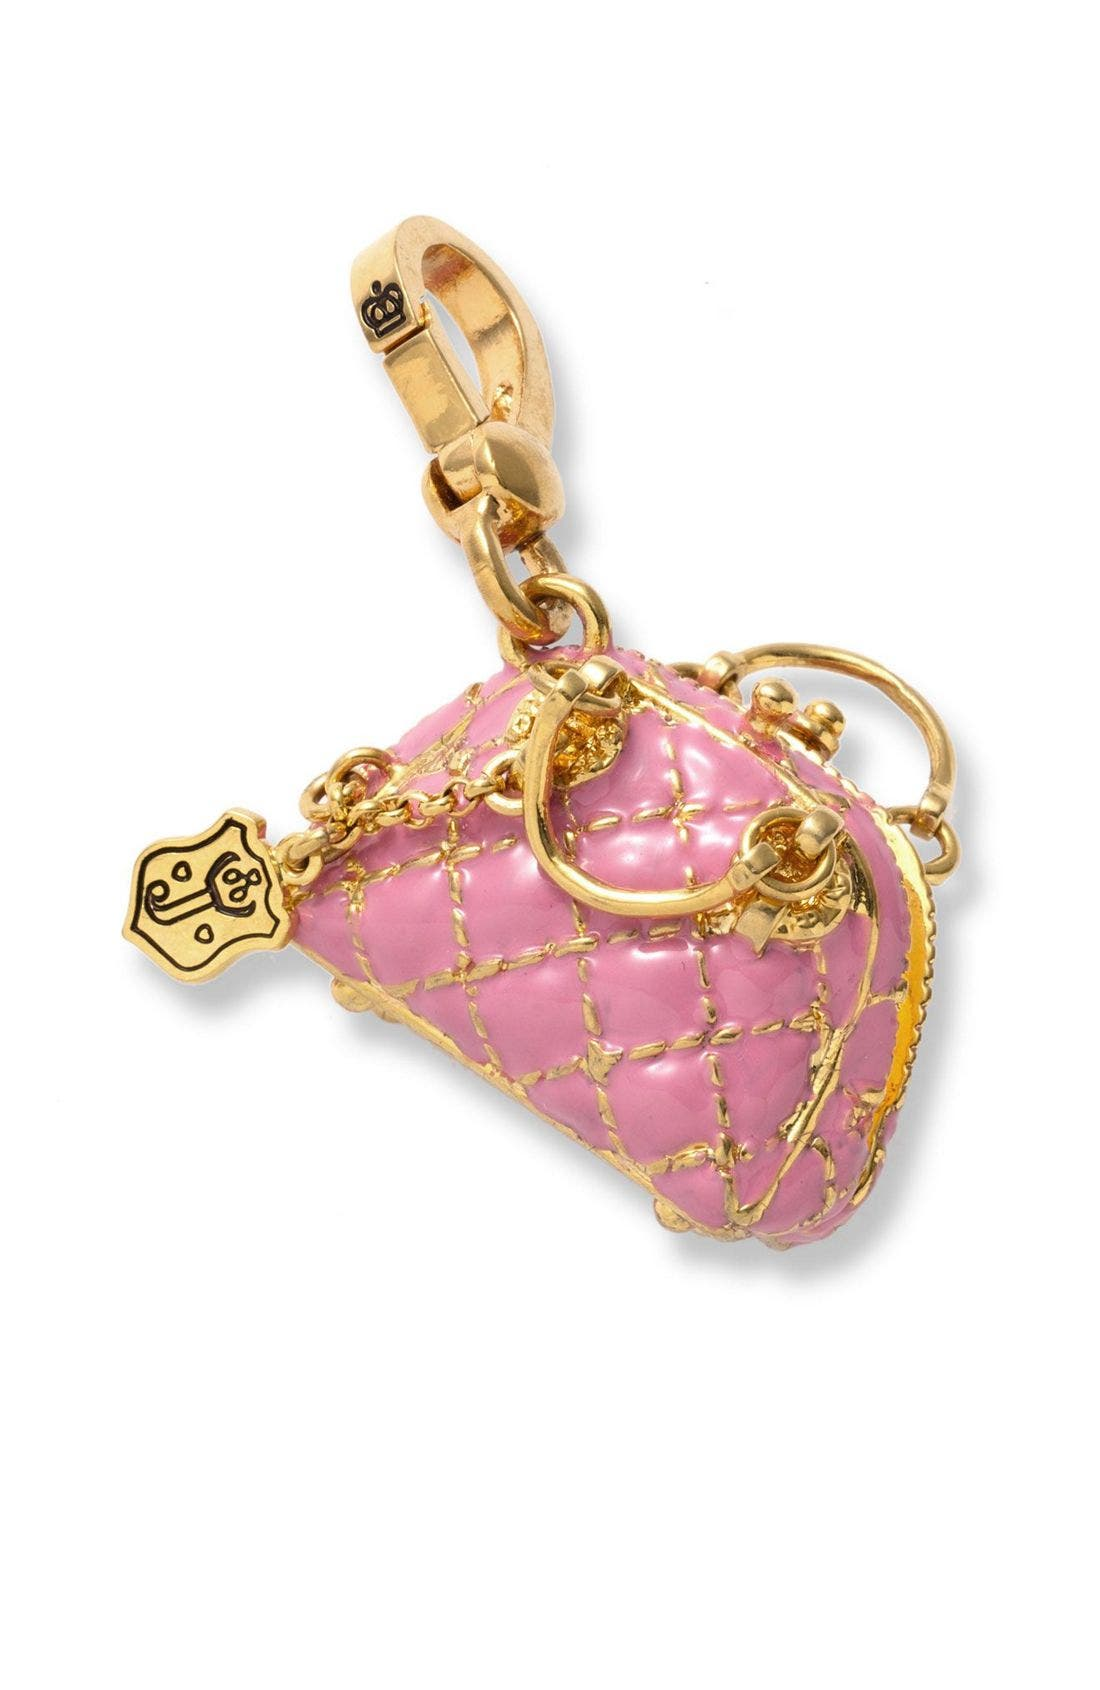 Alternate Image 1 Selected - Juicy Couture 'Status Bag' Pink Charm